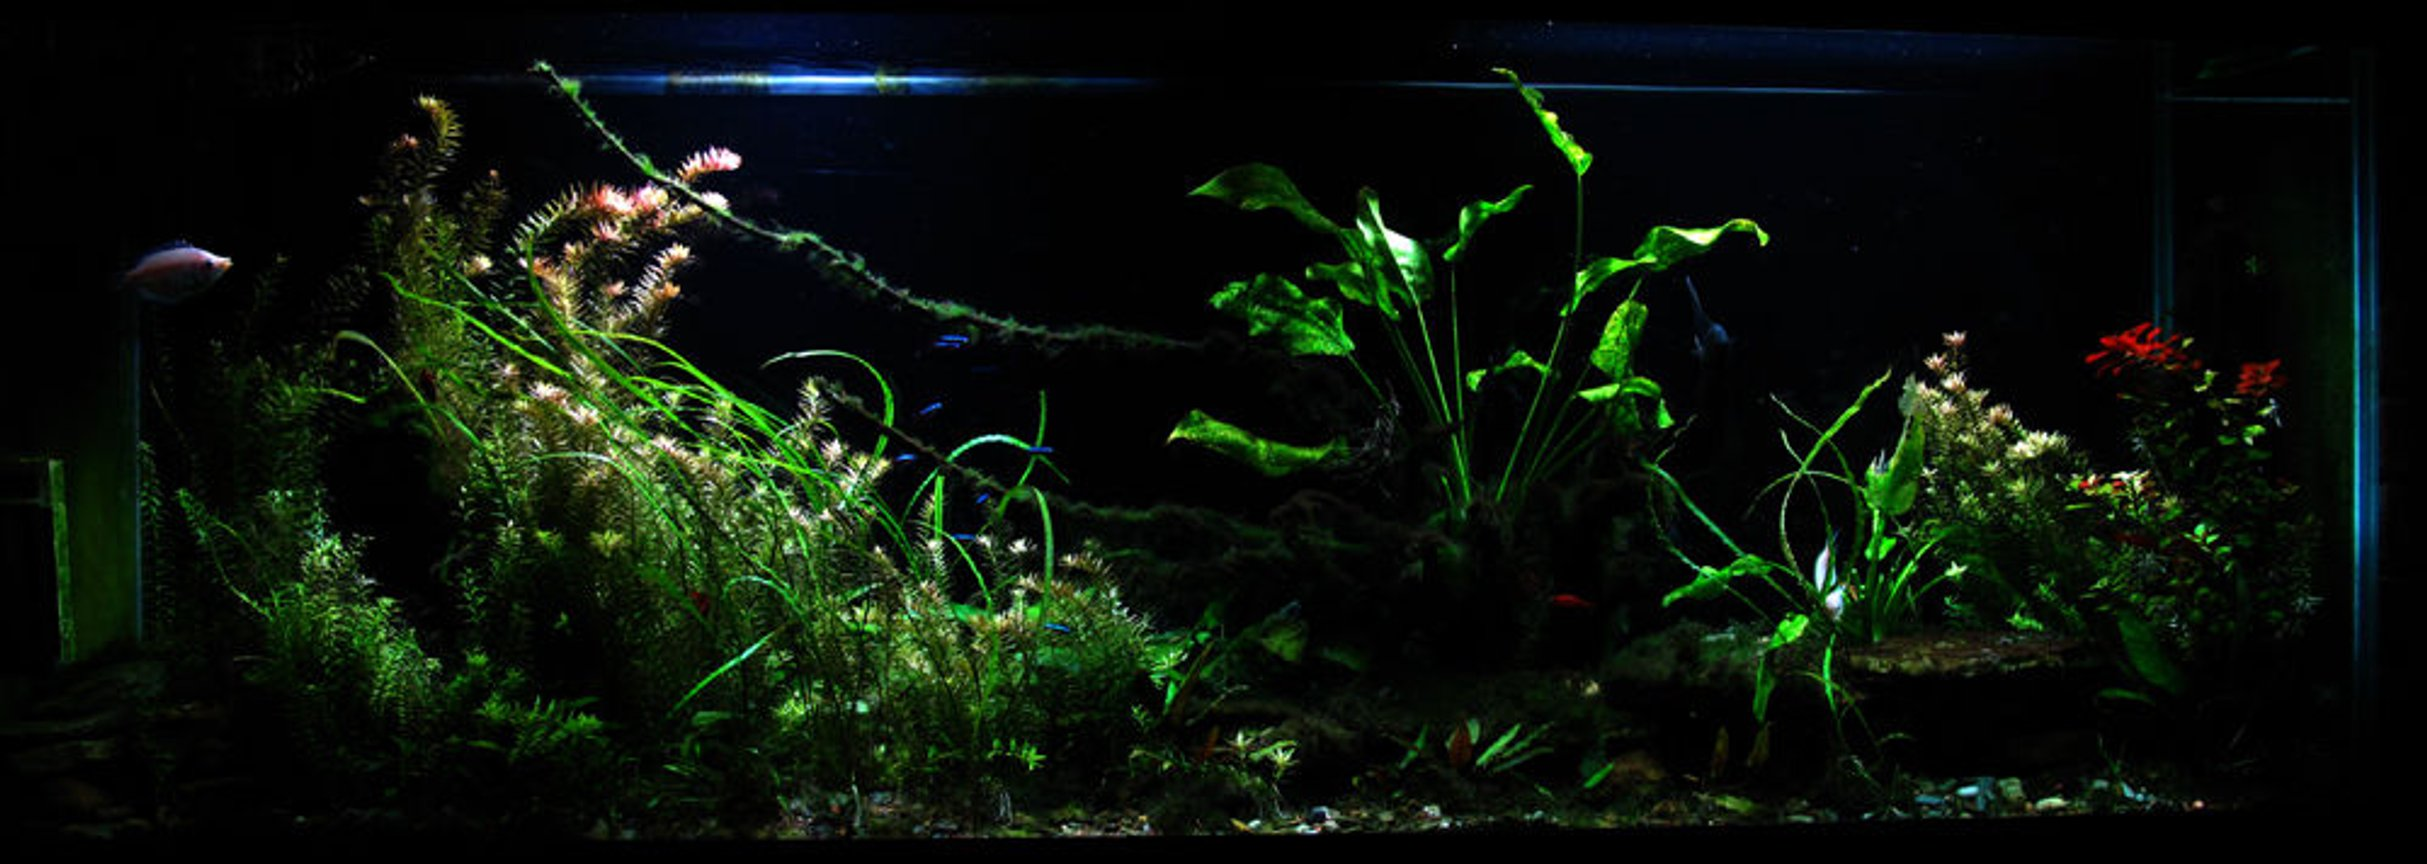 150 gallons planted tank (mostly live plants and fish) - 150 gallon freshwater planted